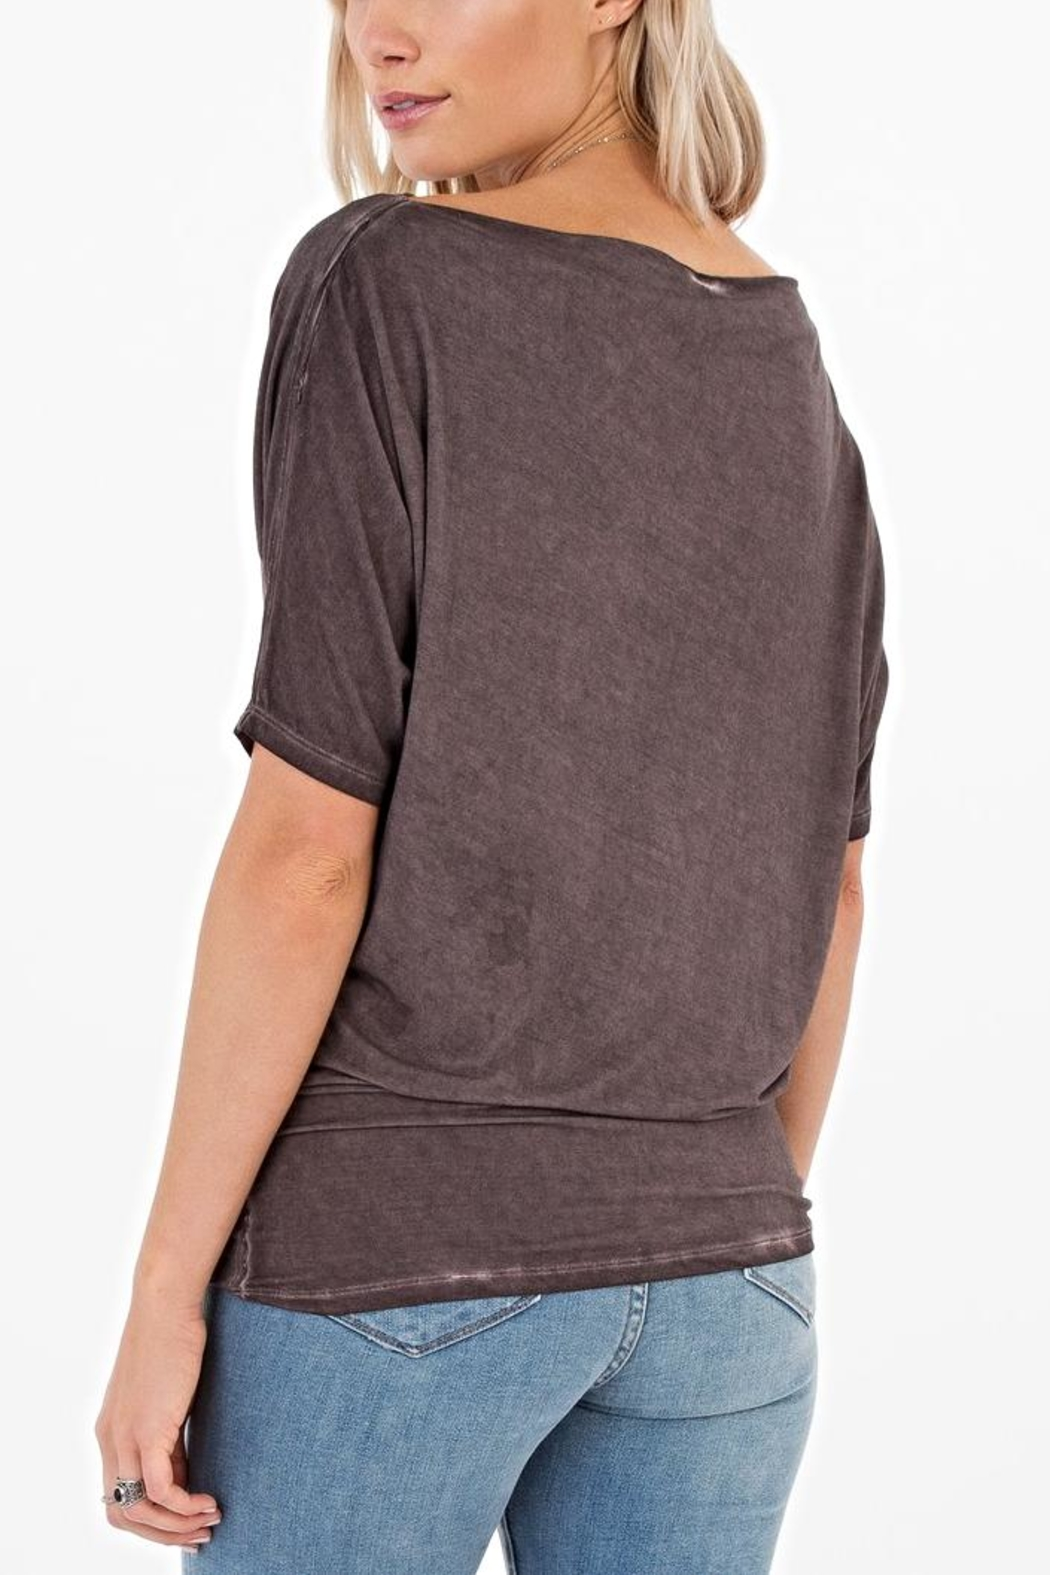 White Crow Boatneck Top - Front Full Image